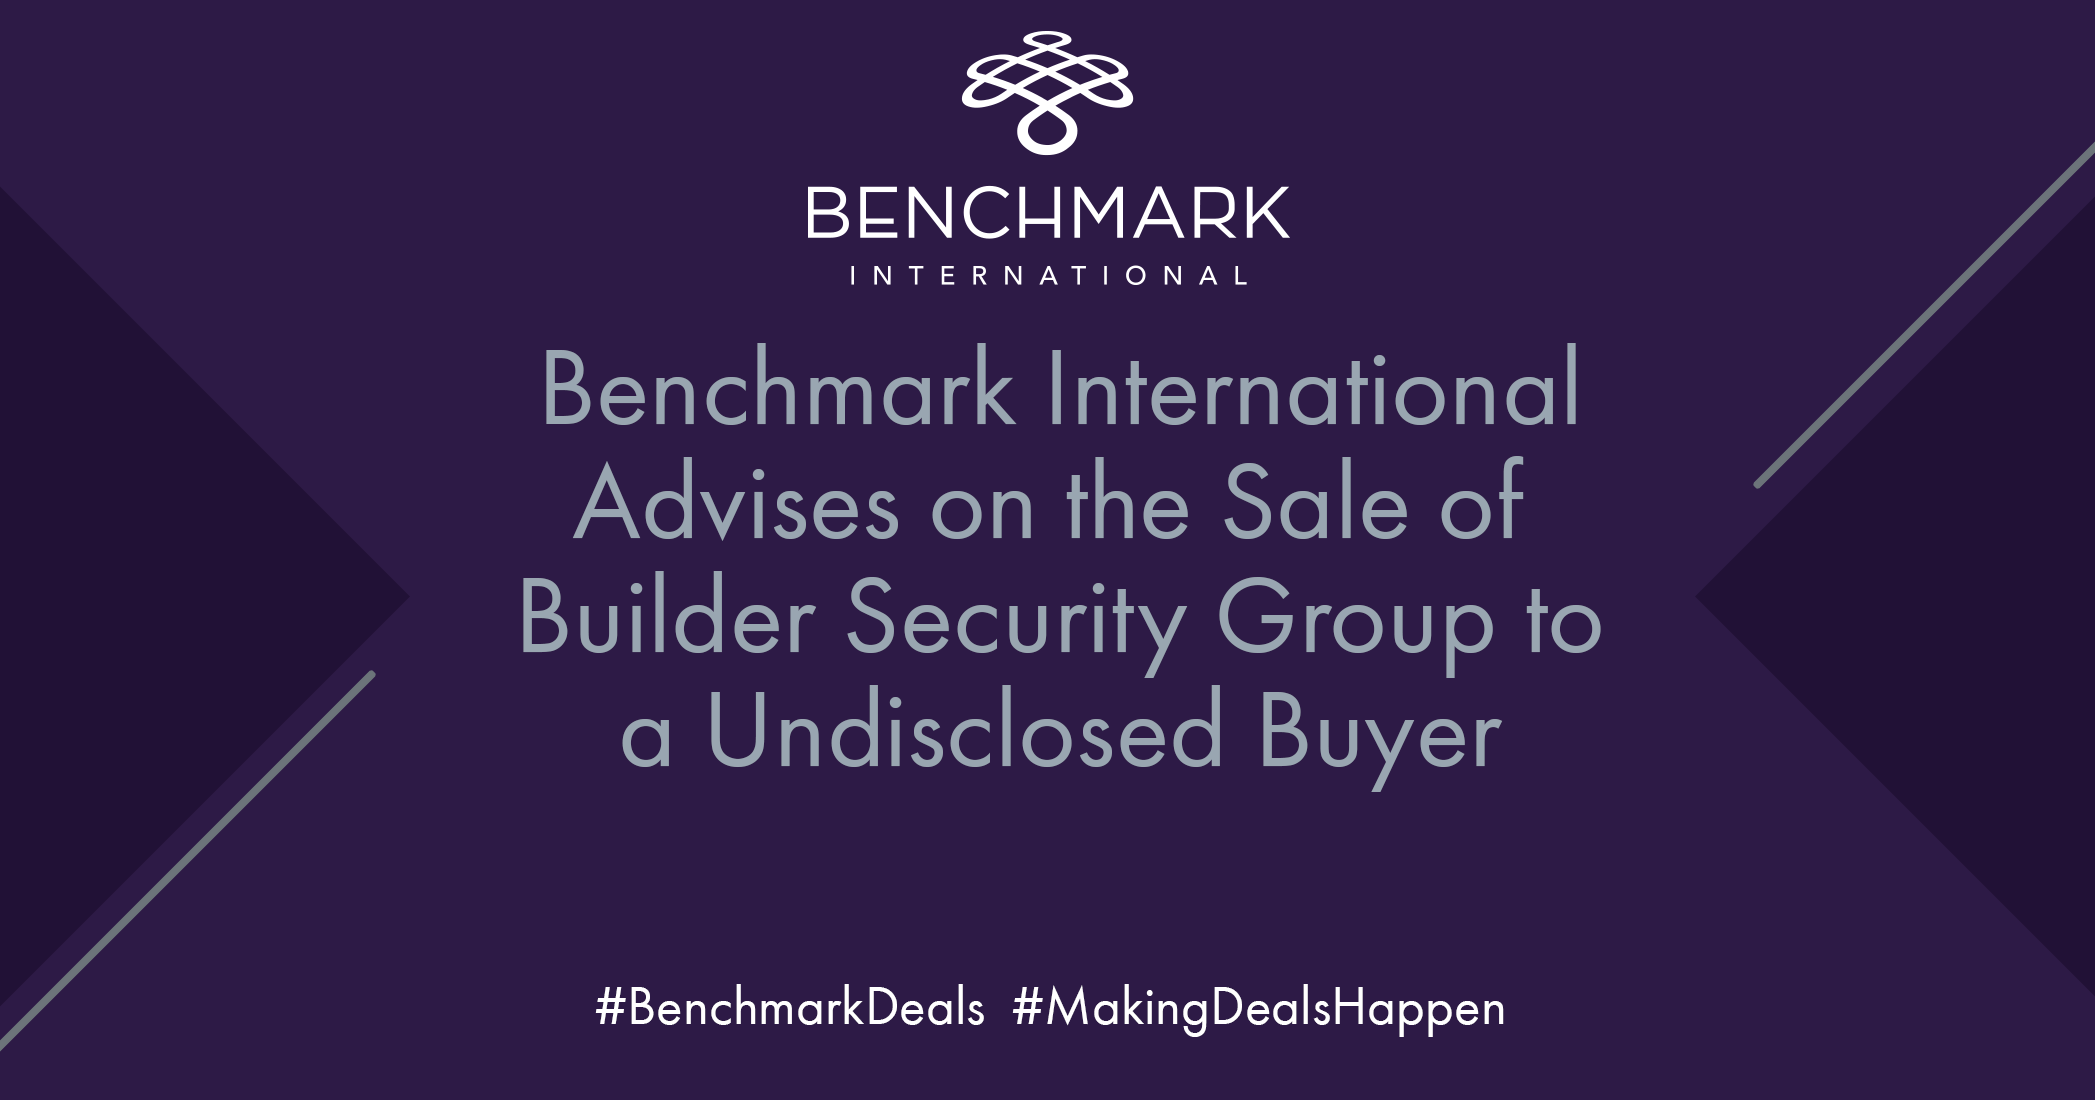 Benchmark International facilitates the acquisition of builder security group